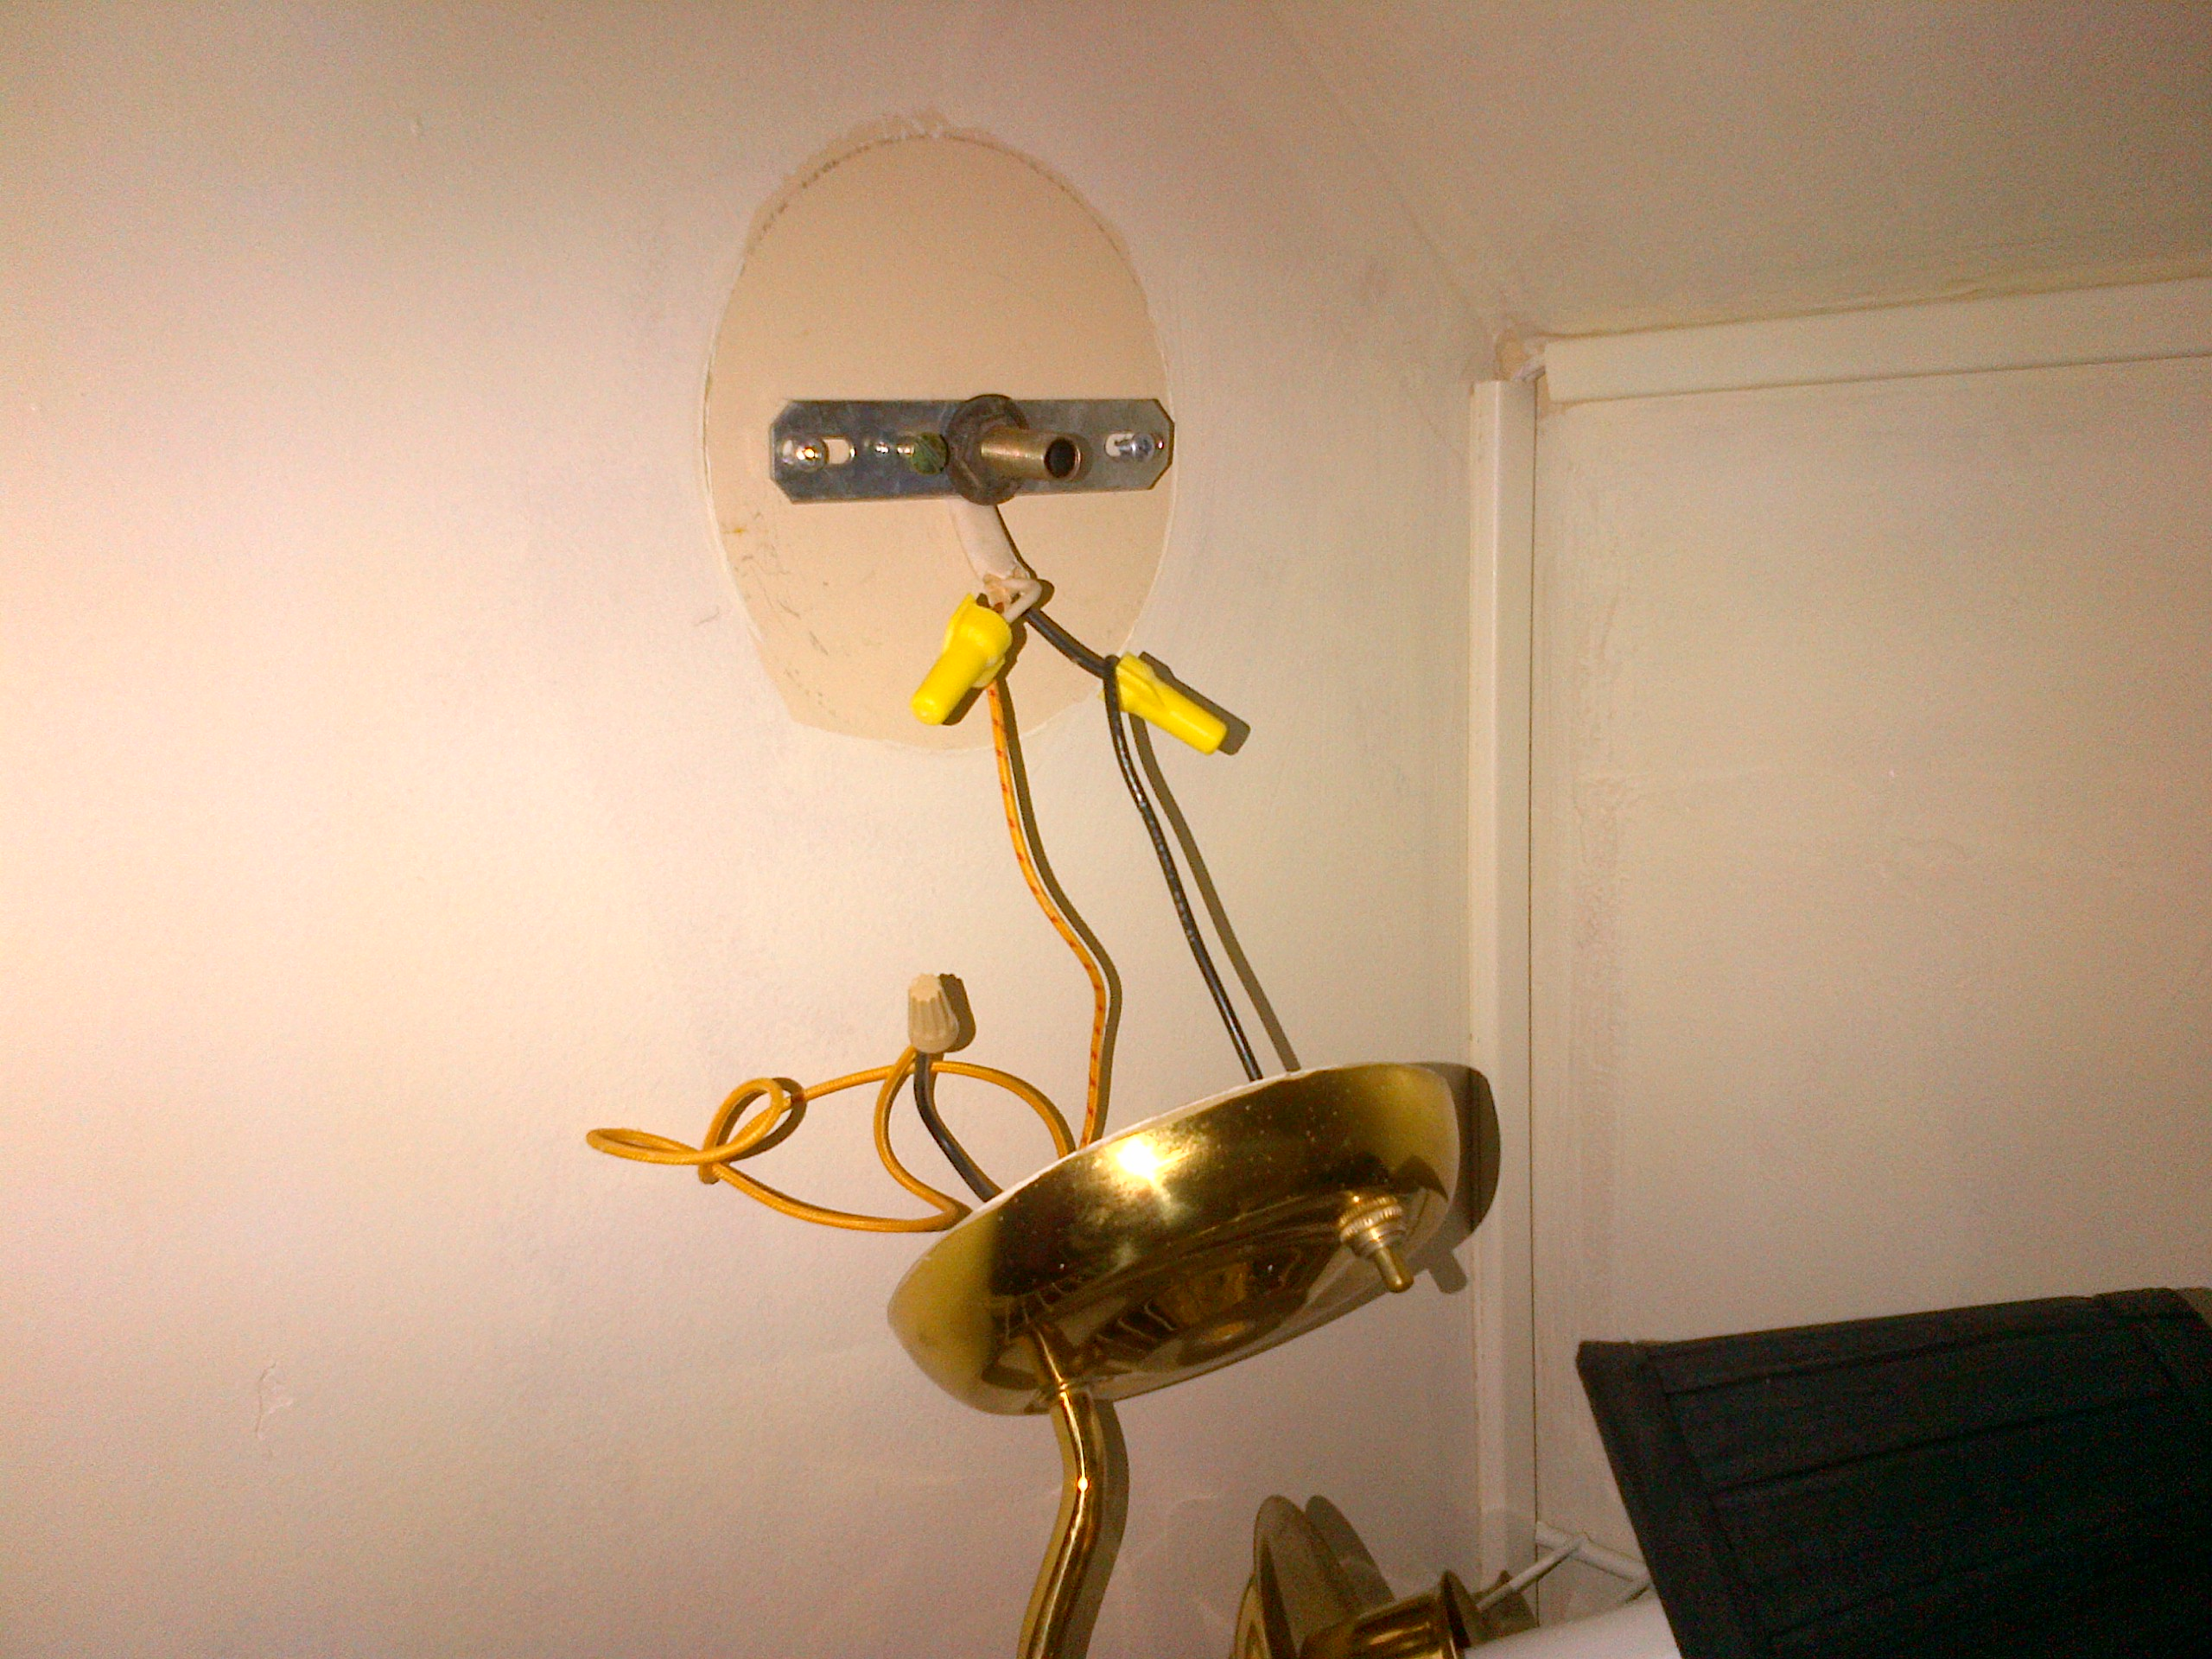 Wired Wall Sconces Can I Add A Light Switch To A Hardwired Wall Sconce With A